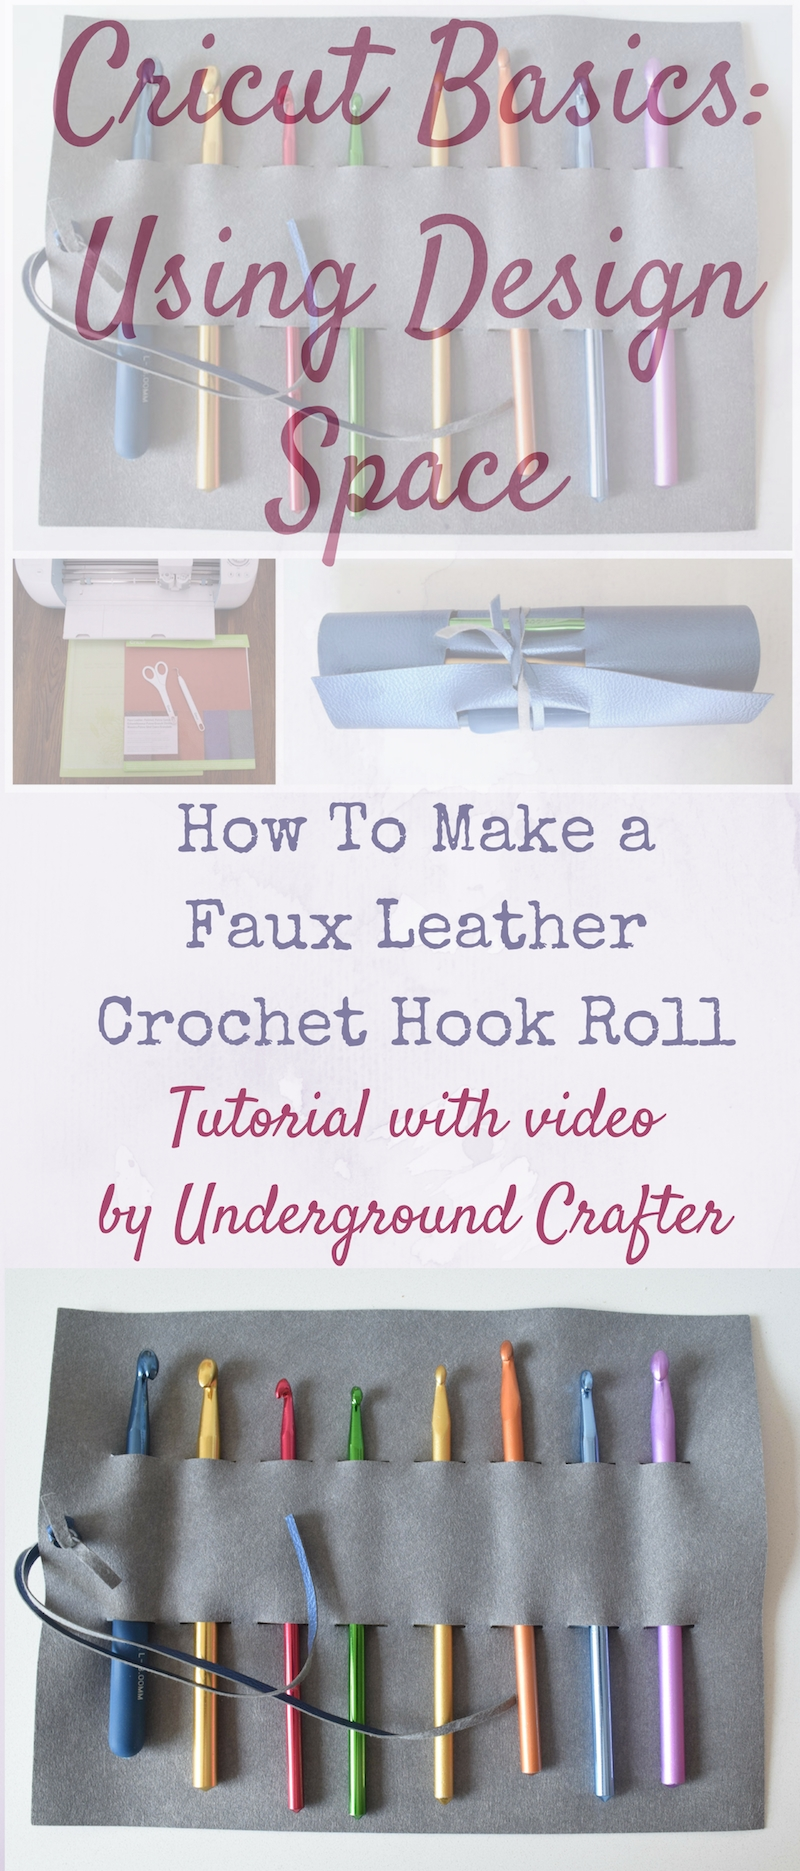 """How To Make a Faux Leather Crochet Hook Roll with Cricut tutorial by Underground Crafter 